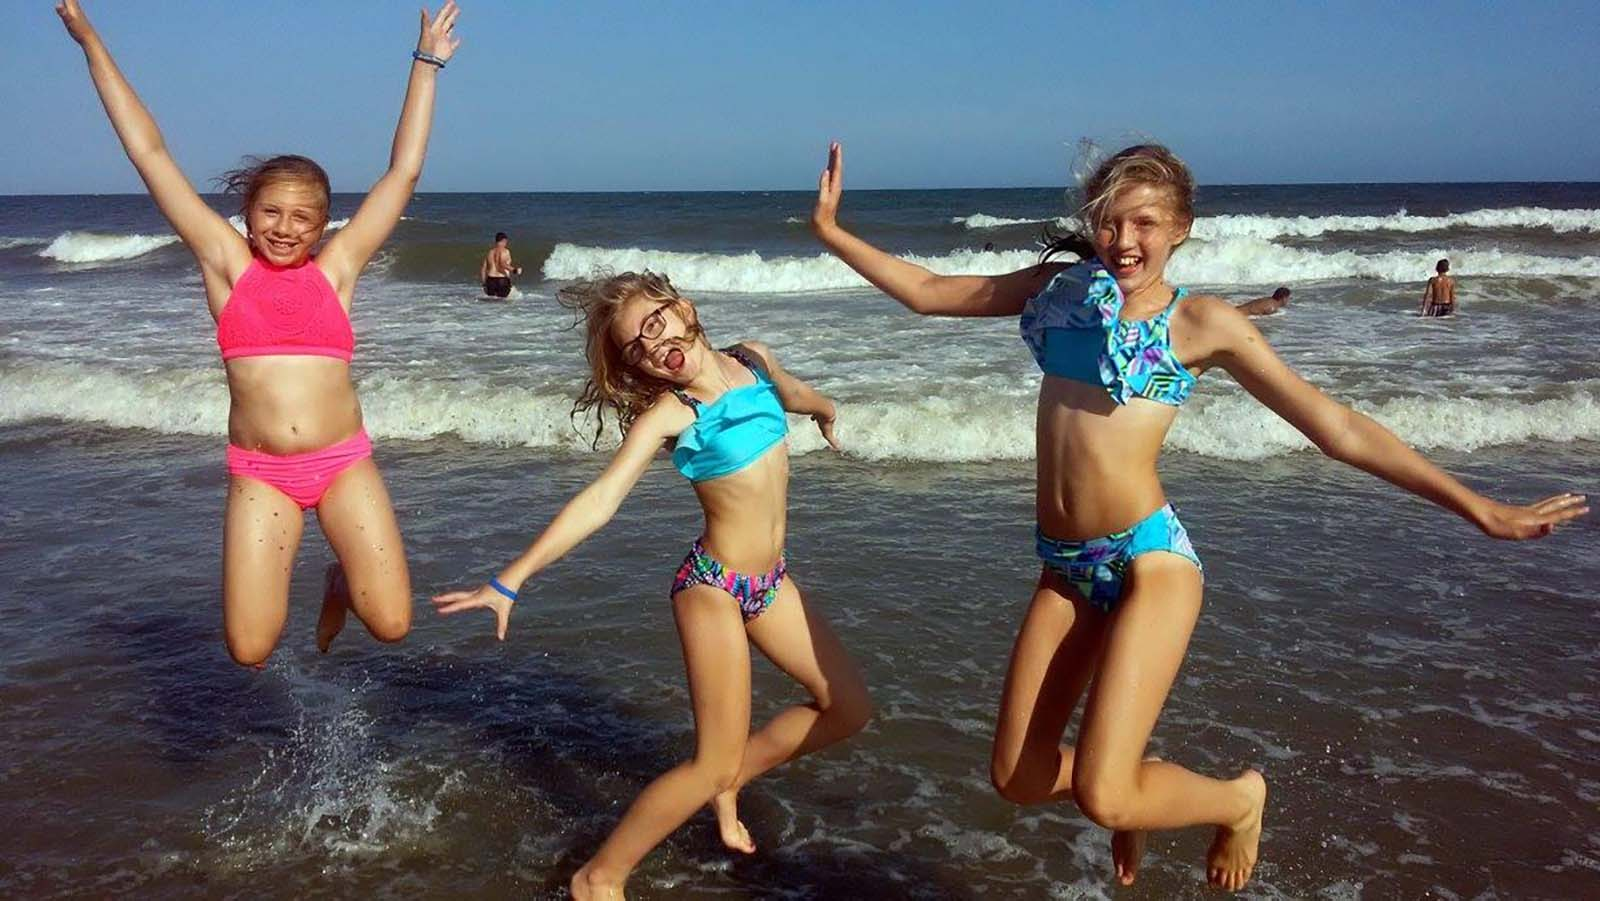 The girls jumping in the air in ocean